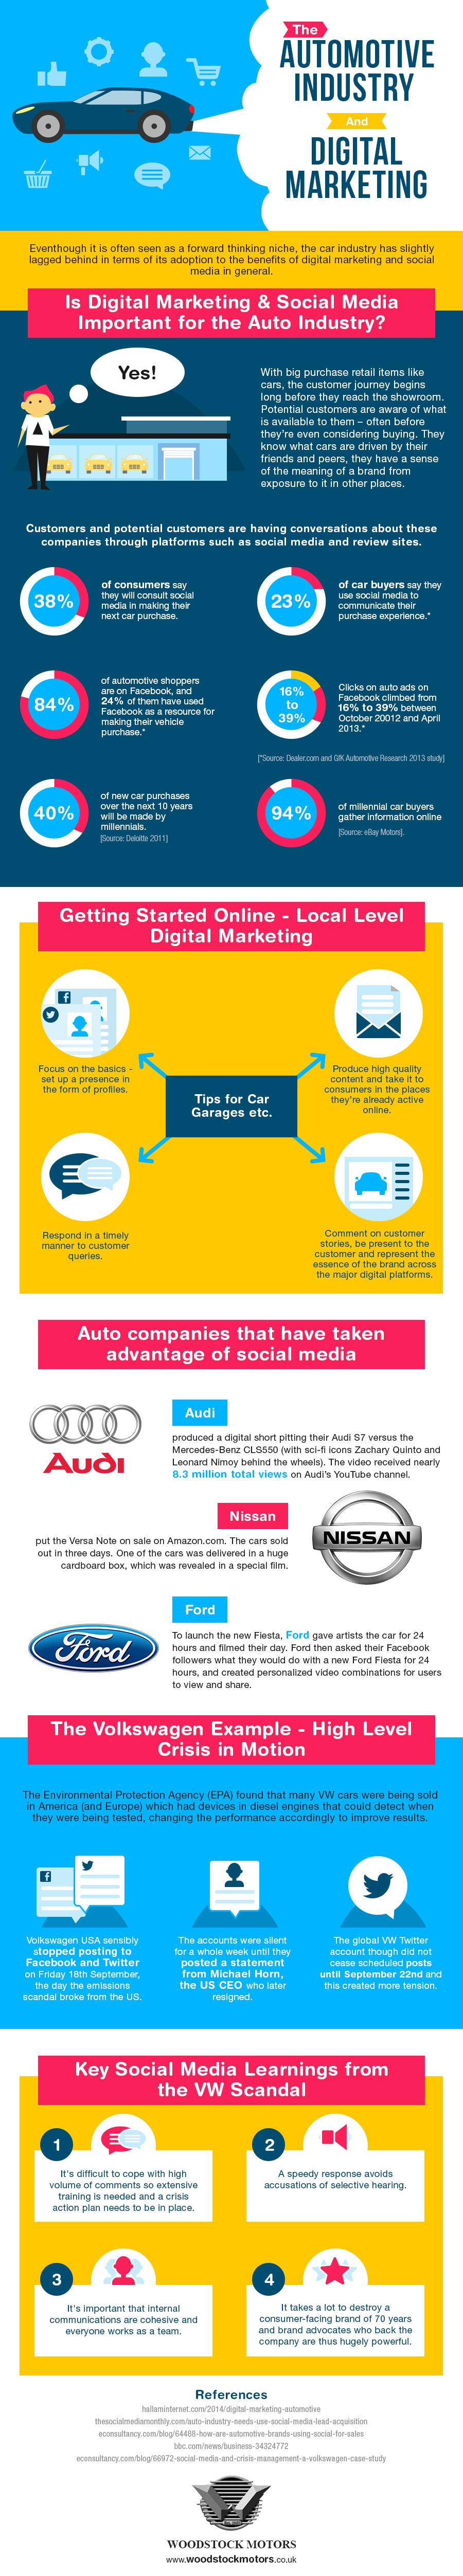 Digital Marketing and the Auto Industry Infographic